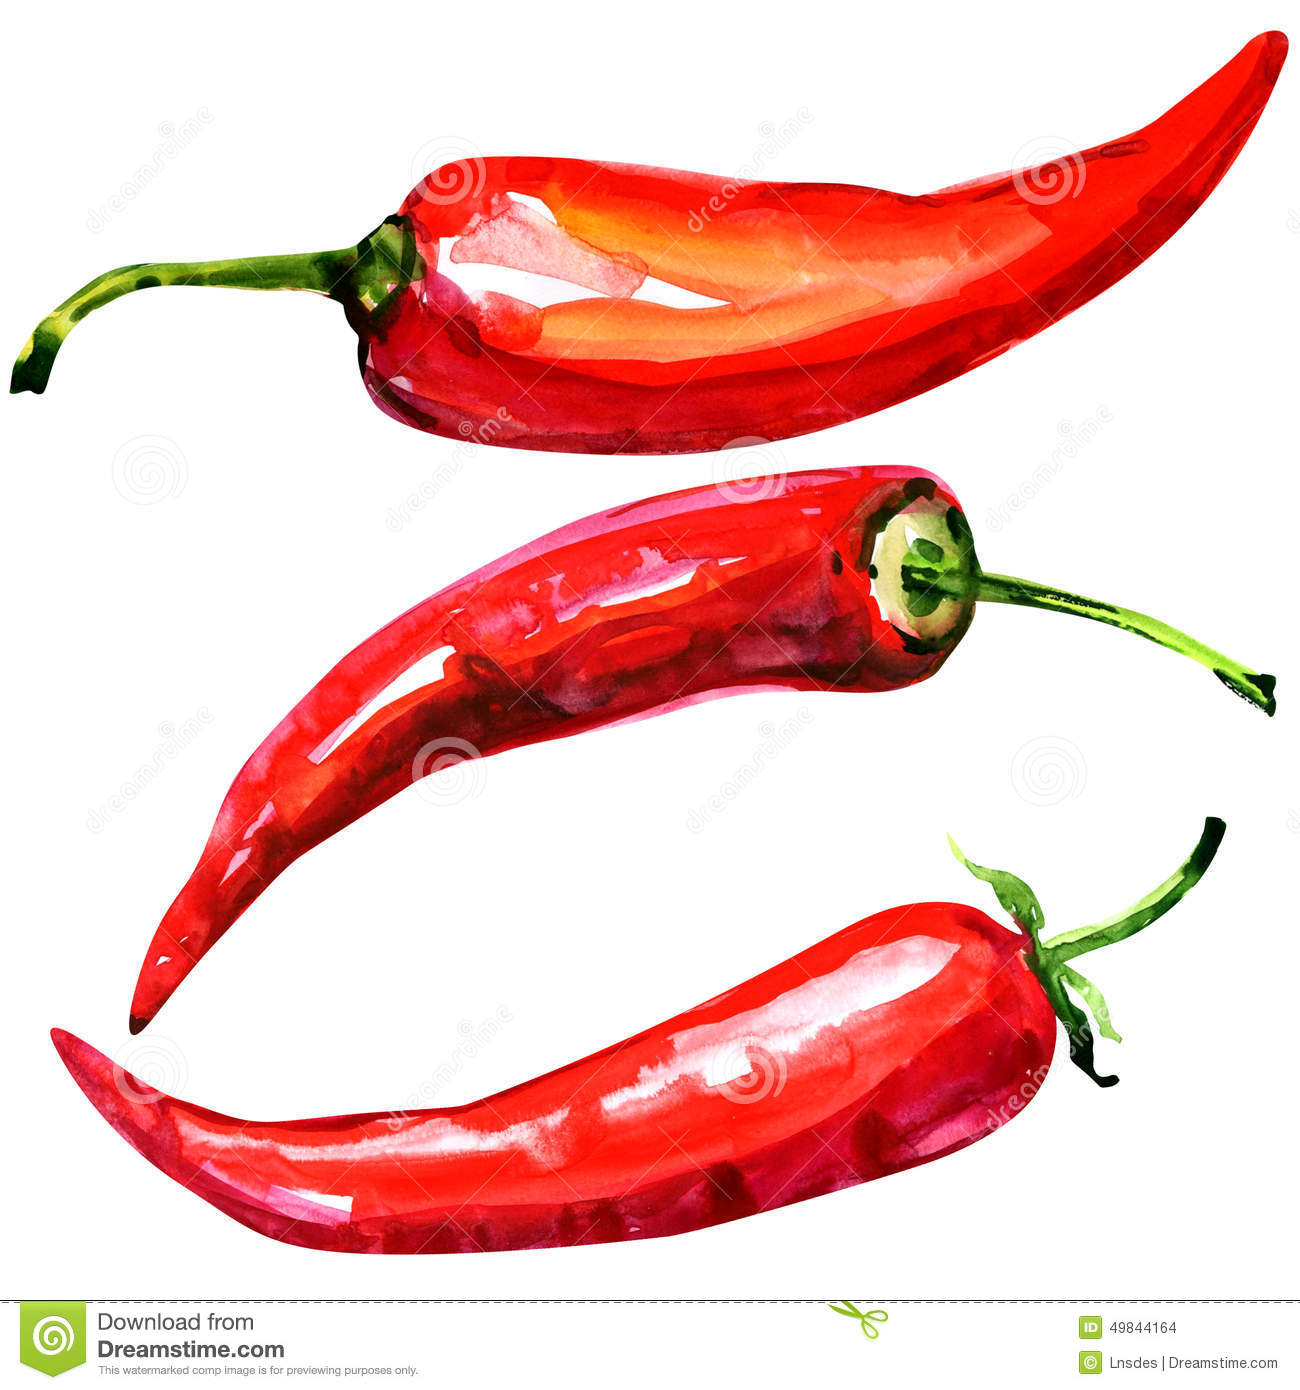 red hot chili peppers essay A study of more than 16000 us adults suggests that consuming red hot chili  peppers might lower the risk of all-cause mortality.